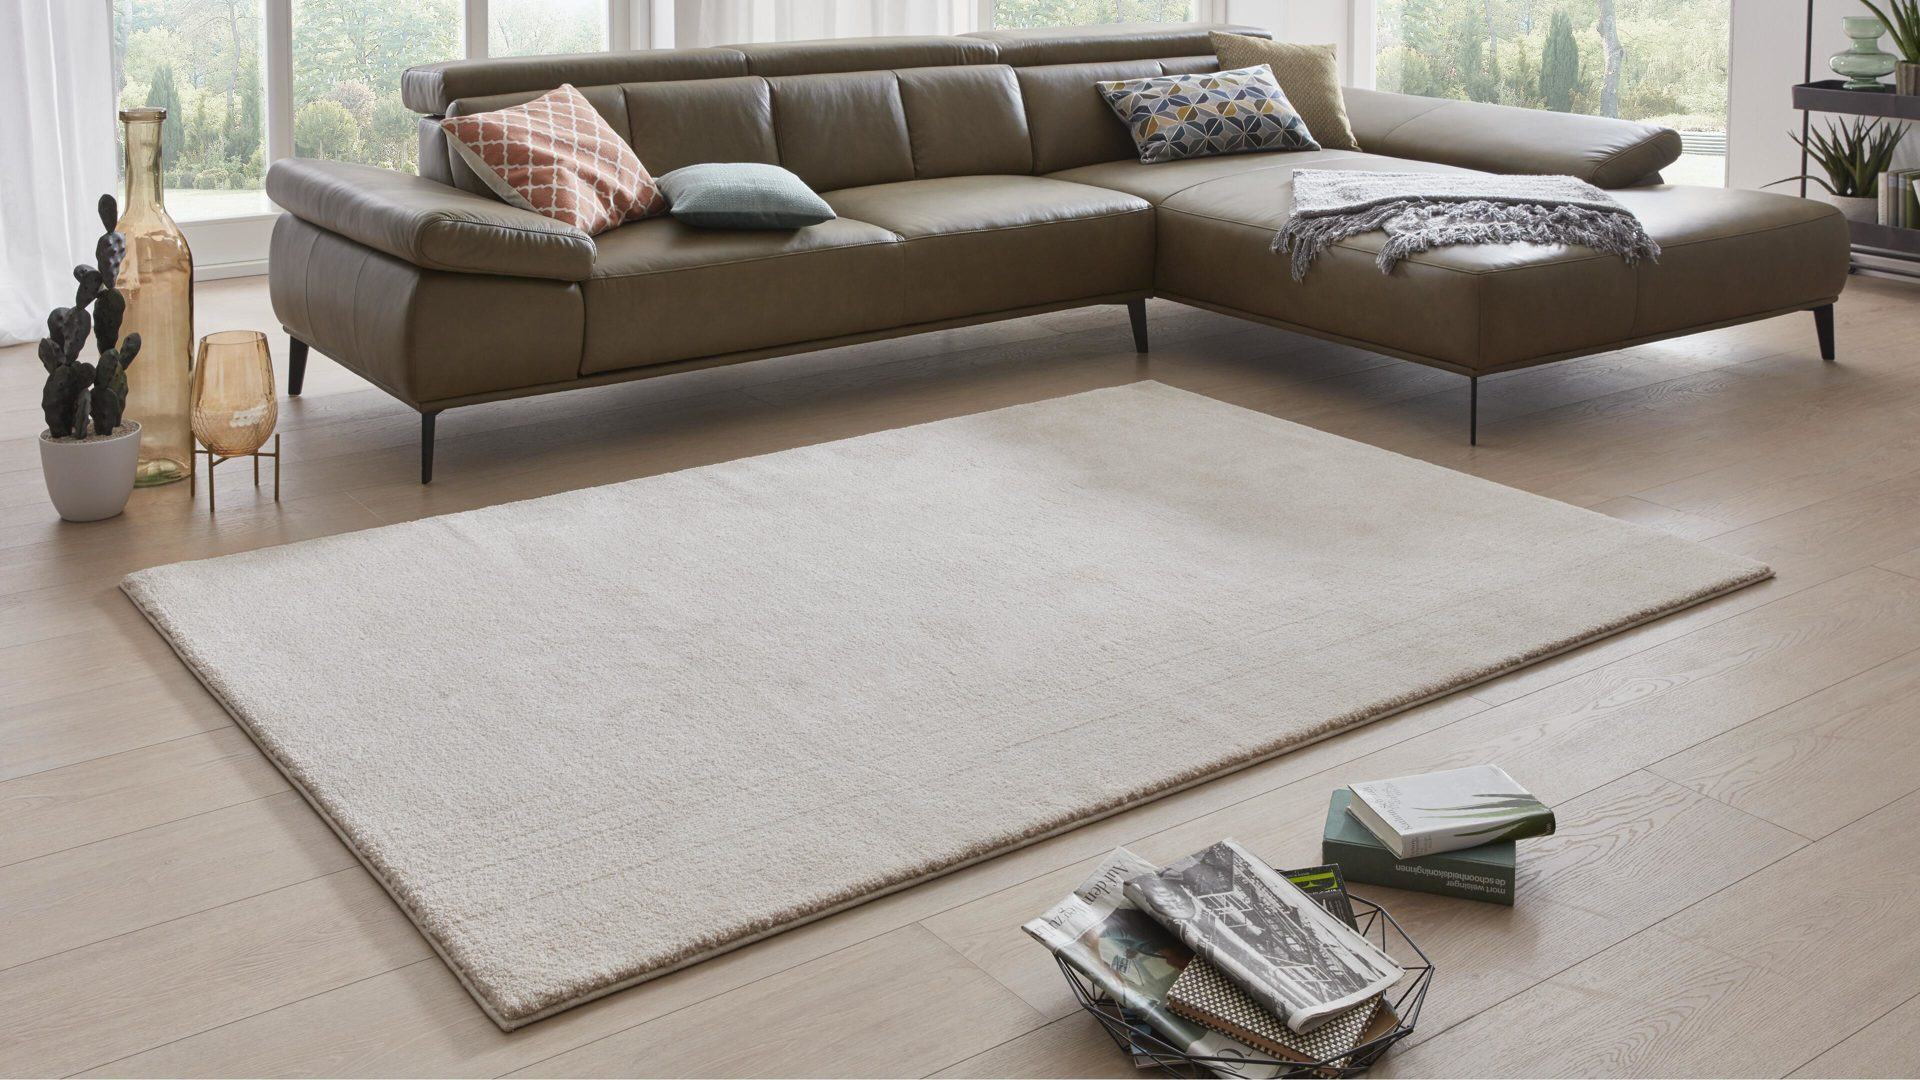 Webteppich Interliving aus Kunstfaser in Beige Interliving Teppich Serie L-8500 beige-mix – ca. 133 x 200 cm